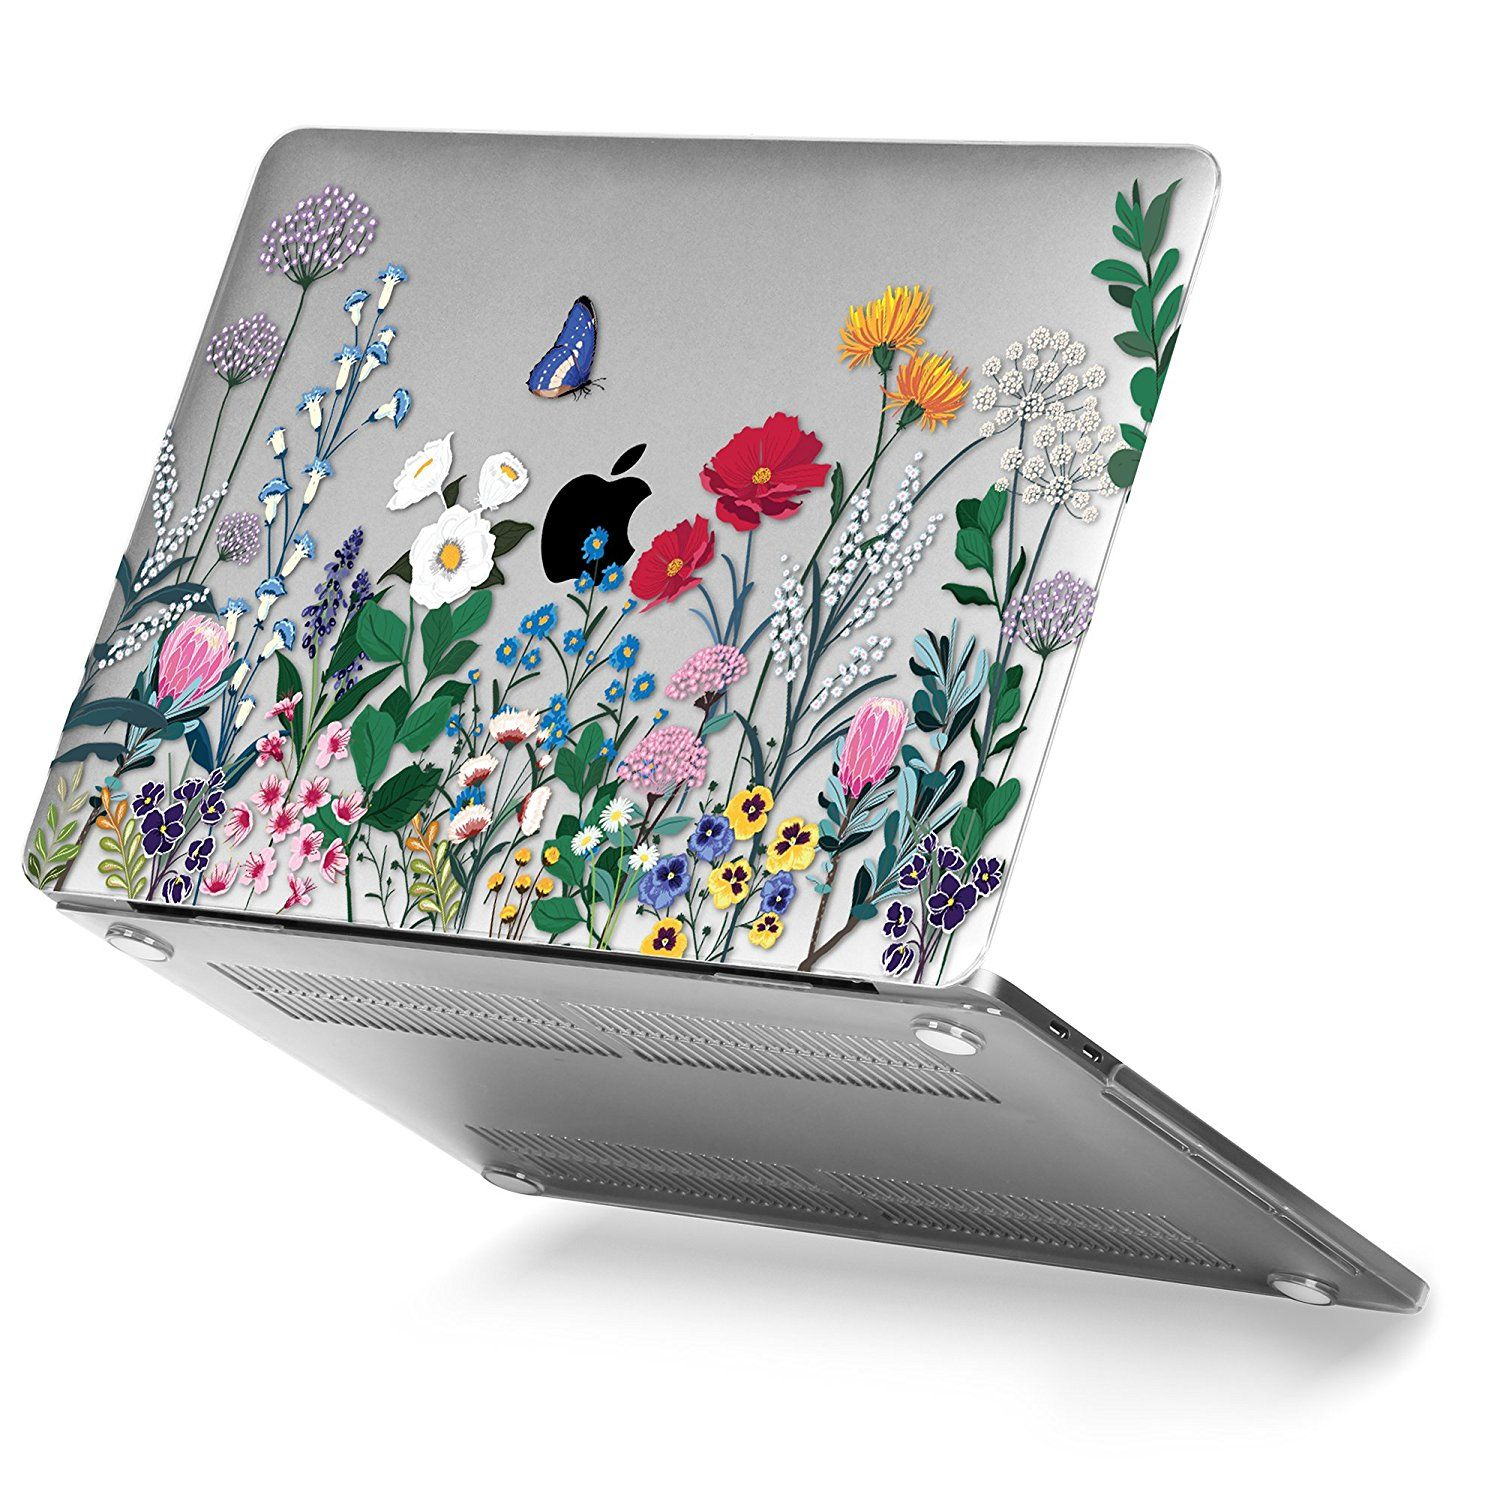 Amazon Com Macbook Pro 13 Case 2017 2016 Release A1706 A1708 Gmyle Plastic Hard Case Shell Cover For Apple New Mac Macbook Pro 13 Inch Macbook Case Macbook